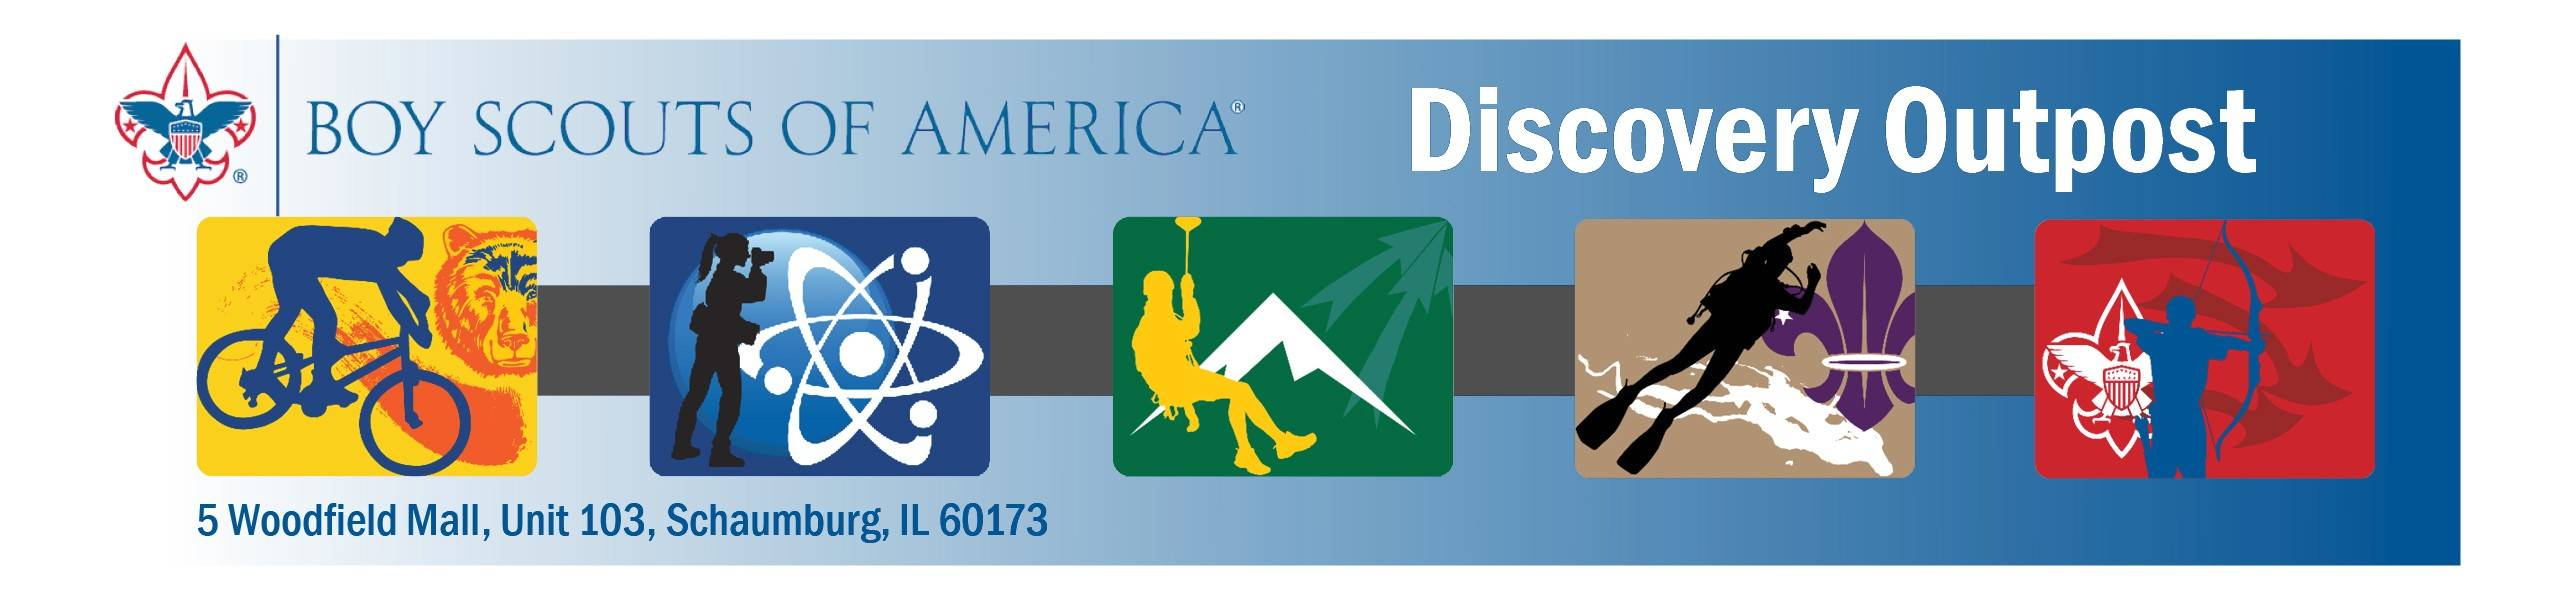 The official logo for the Boy Scouts of America Discovery Outpost coming to Woodfield Mall in Schaumburg.